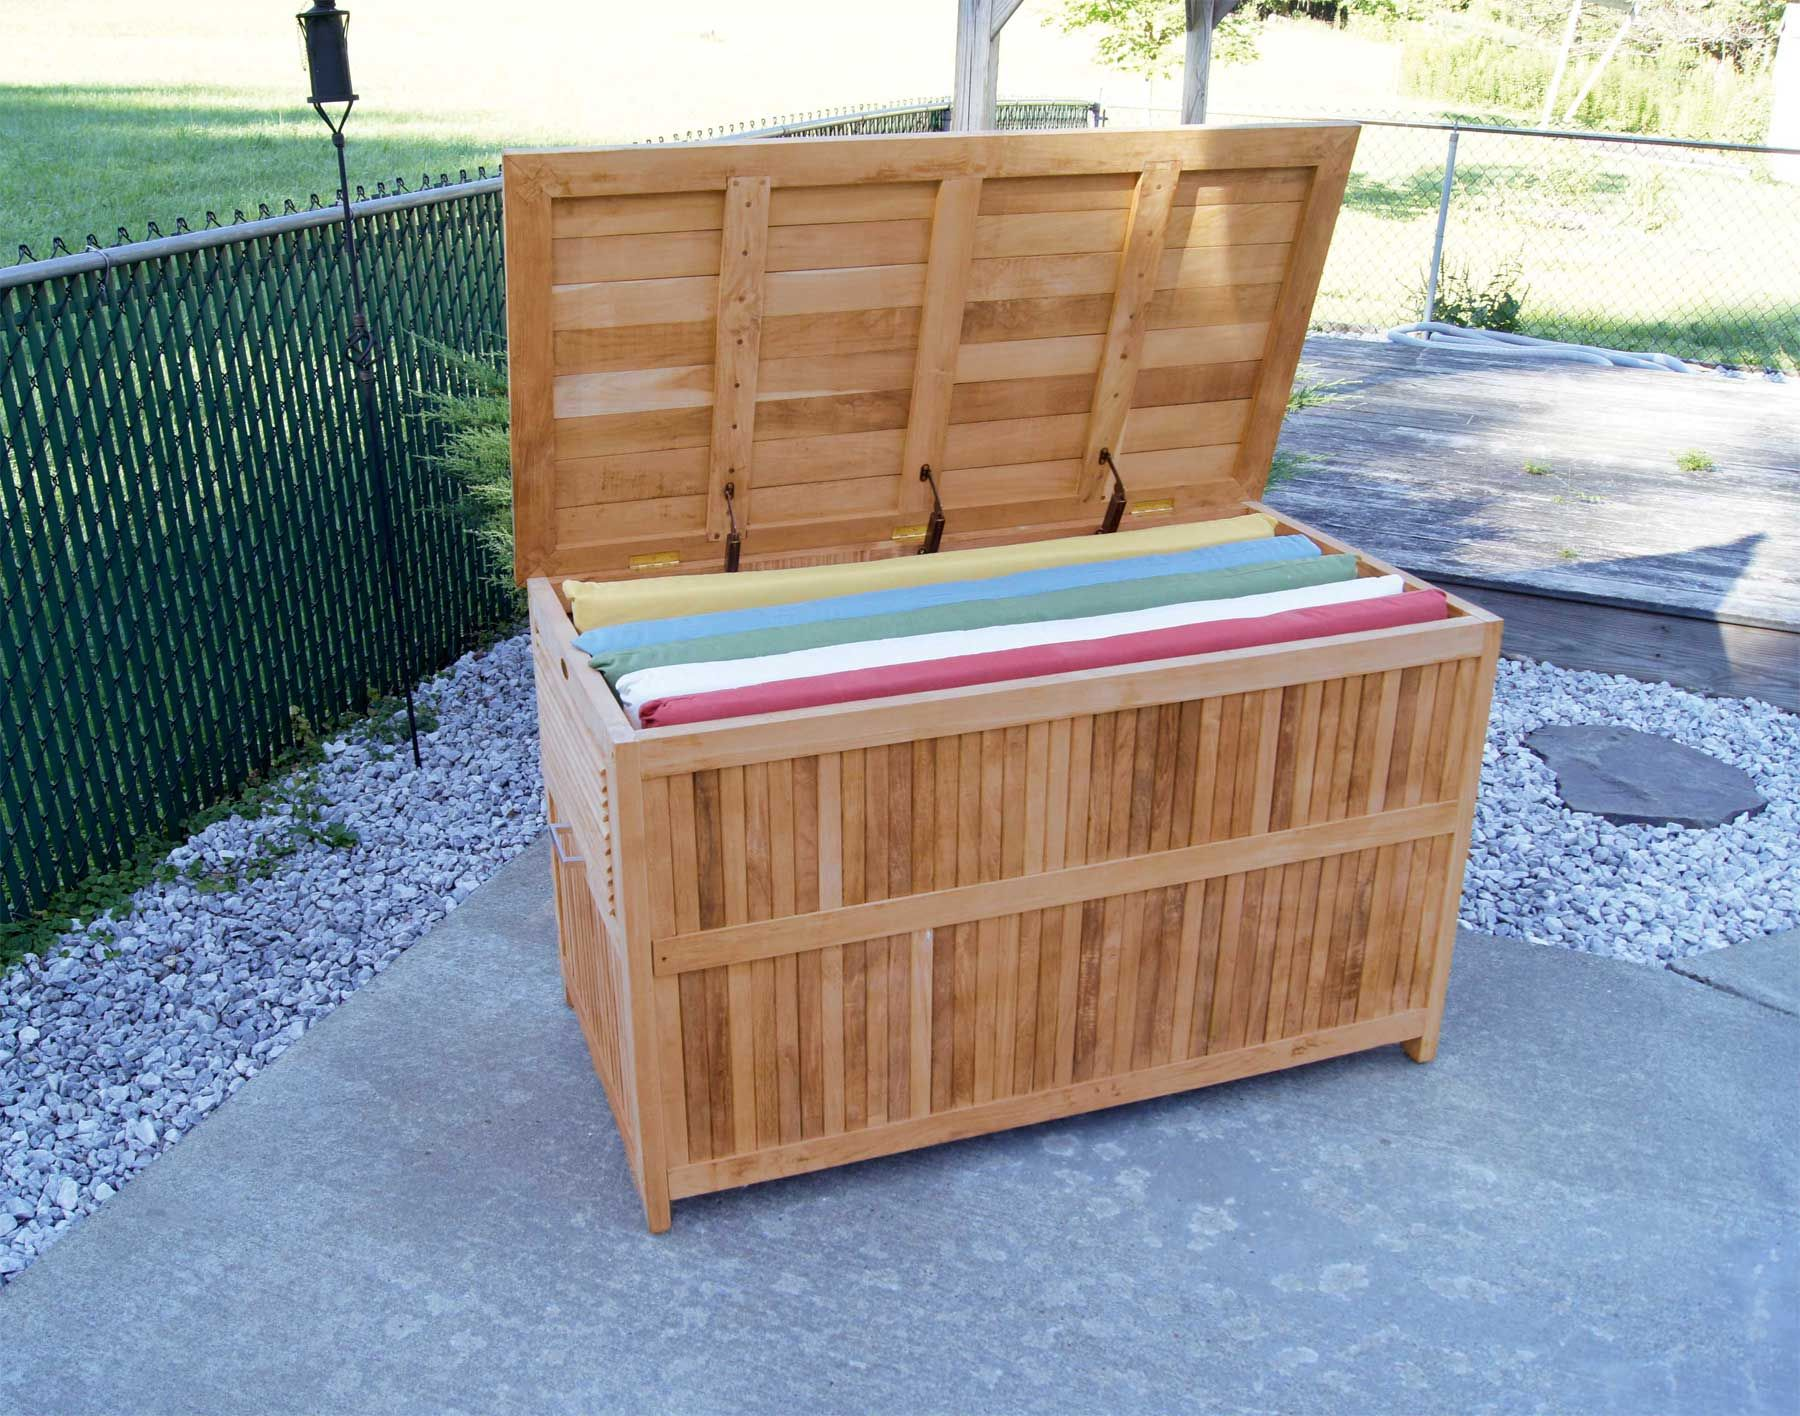 Teak Outdoor Patio Deck Storage Box for Outdoor Furniture Cushions & Teak Outdoor Patio Deck Storage Box for Outdoor Furniture Cushions ... Aboutintivar.Com